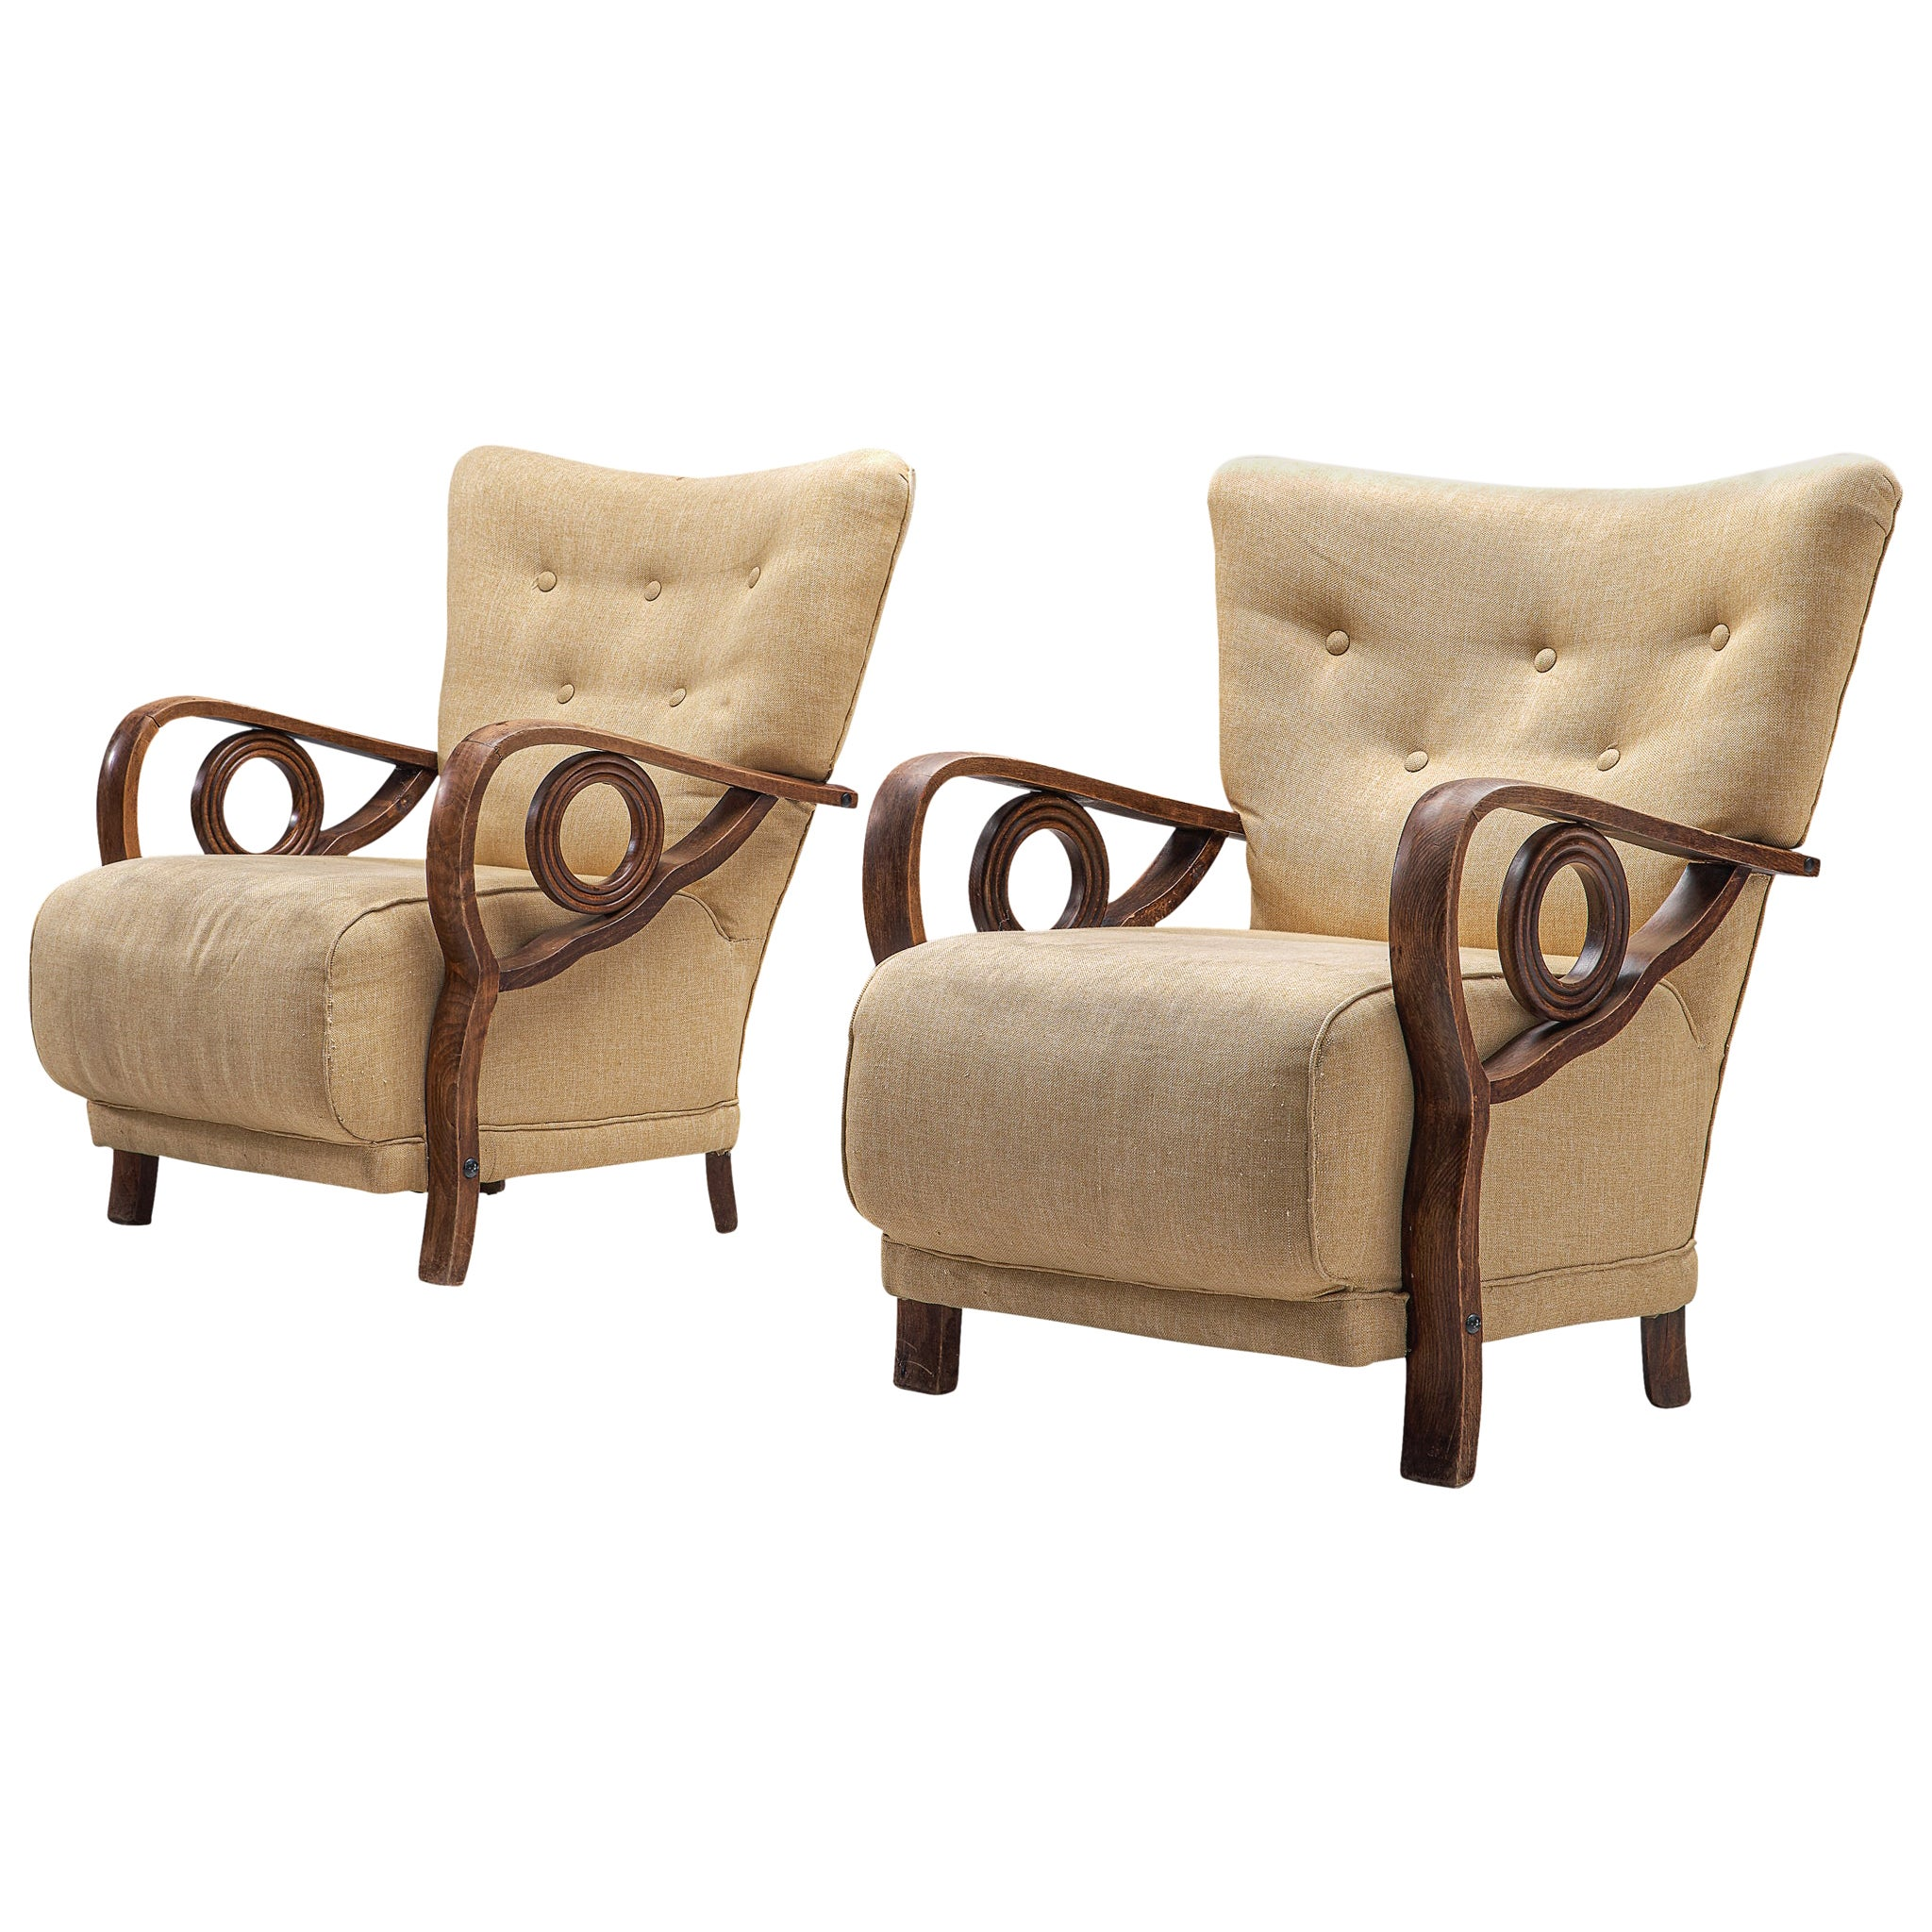 Pair of Art Deco Lounge Chairs in Oak and Fabric